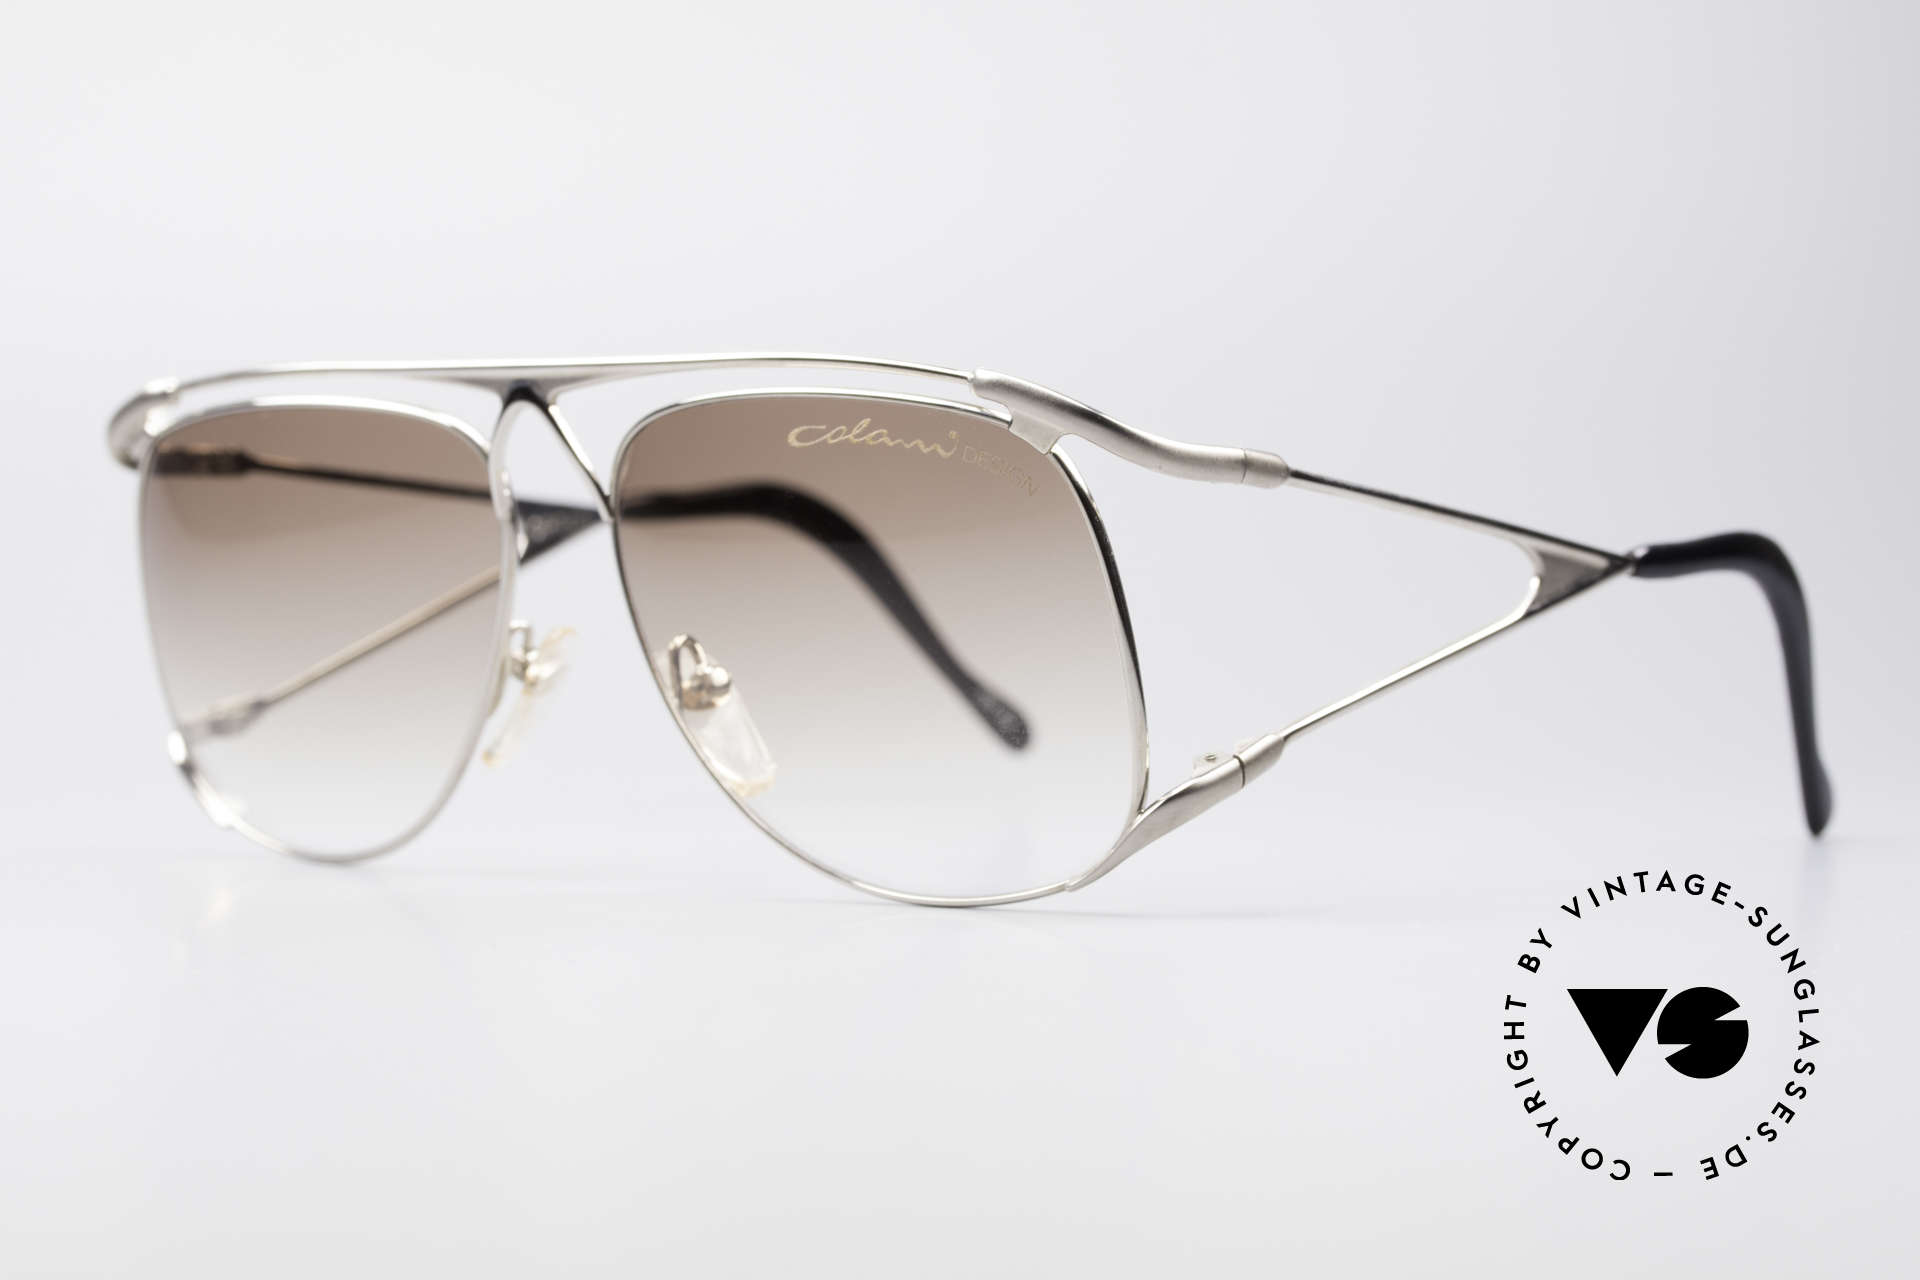 Colani 15-501 Rare 80's Designer Shades, the most wanted Colani model (collector's item), Made for Men